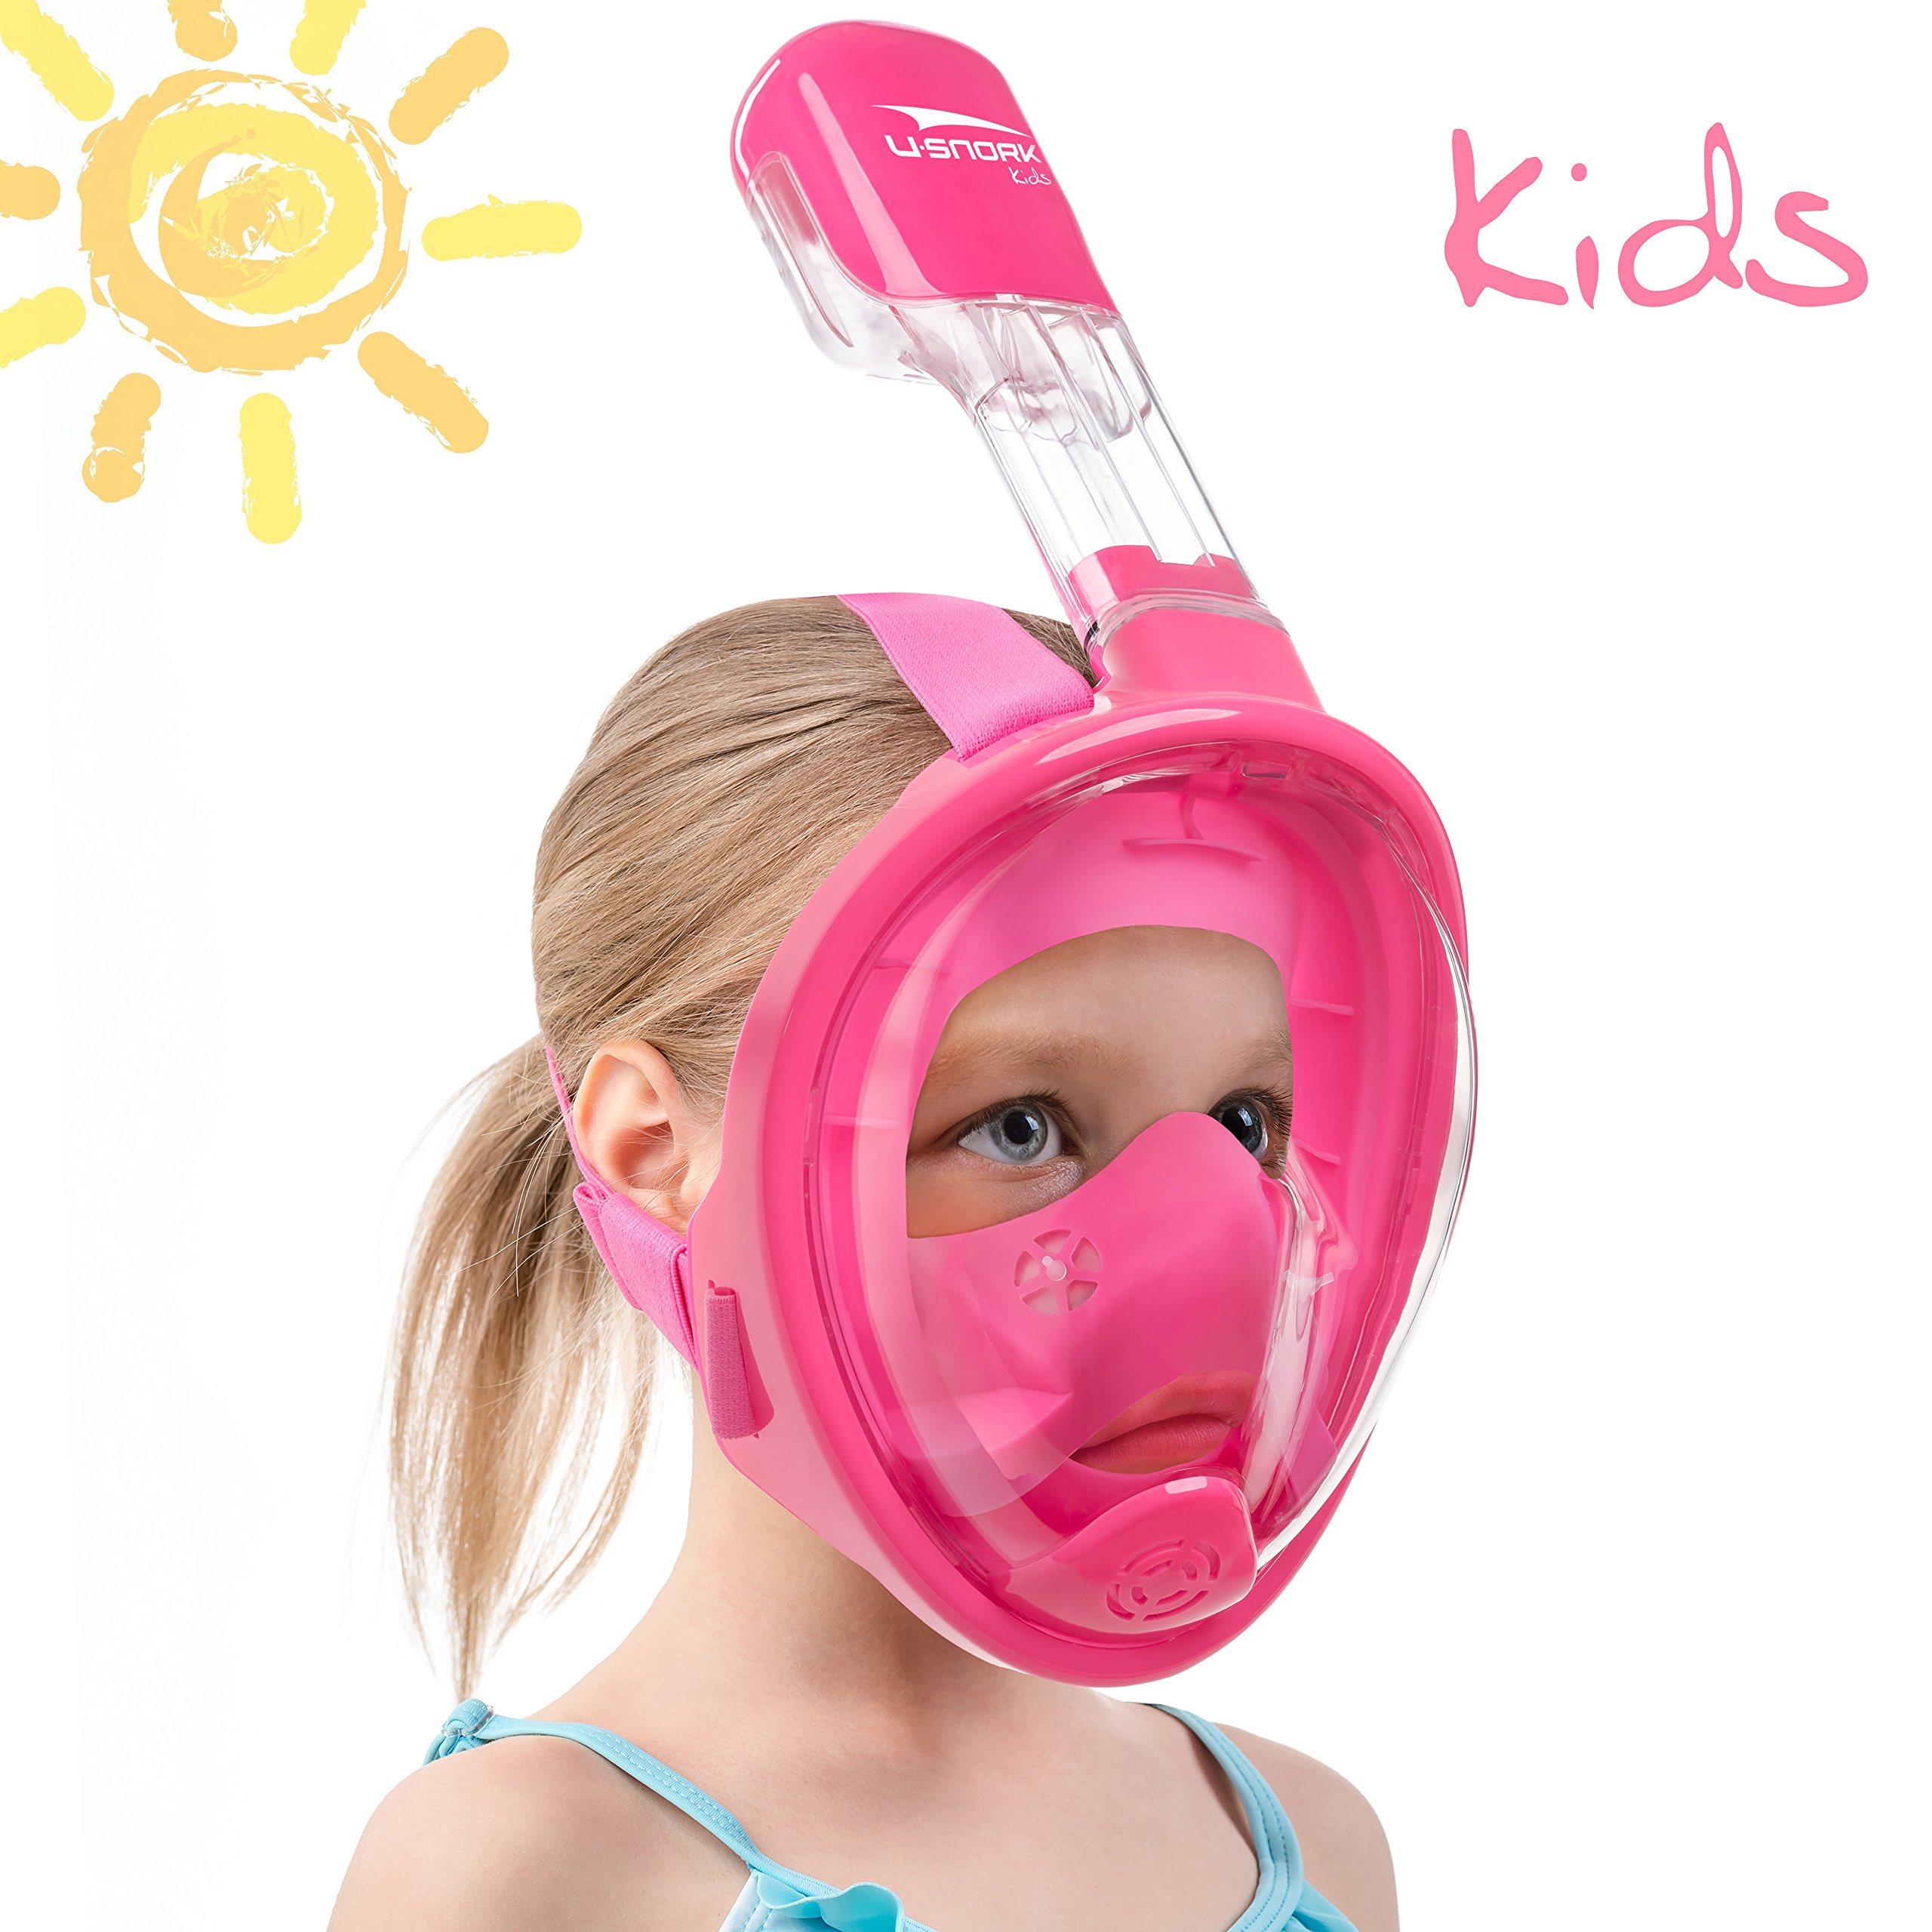 Usnork Full Face Snorkel Mask for Kids and Adults - Snorkel Set with 4 Bonus Items - Anti-Fog and Anti-Leak Easybreath Snorkeling Gear - Dive Scuba Mask with 180 Panoramic View (Pink Kids, X-Small) by Usnork